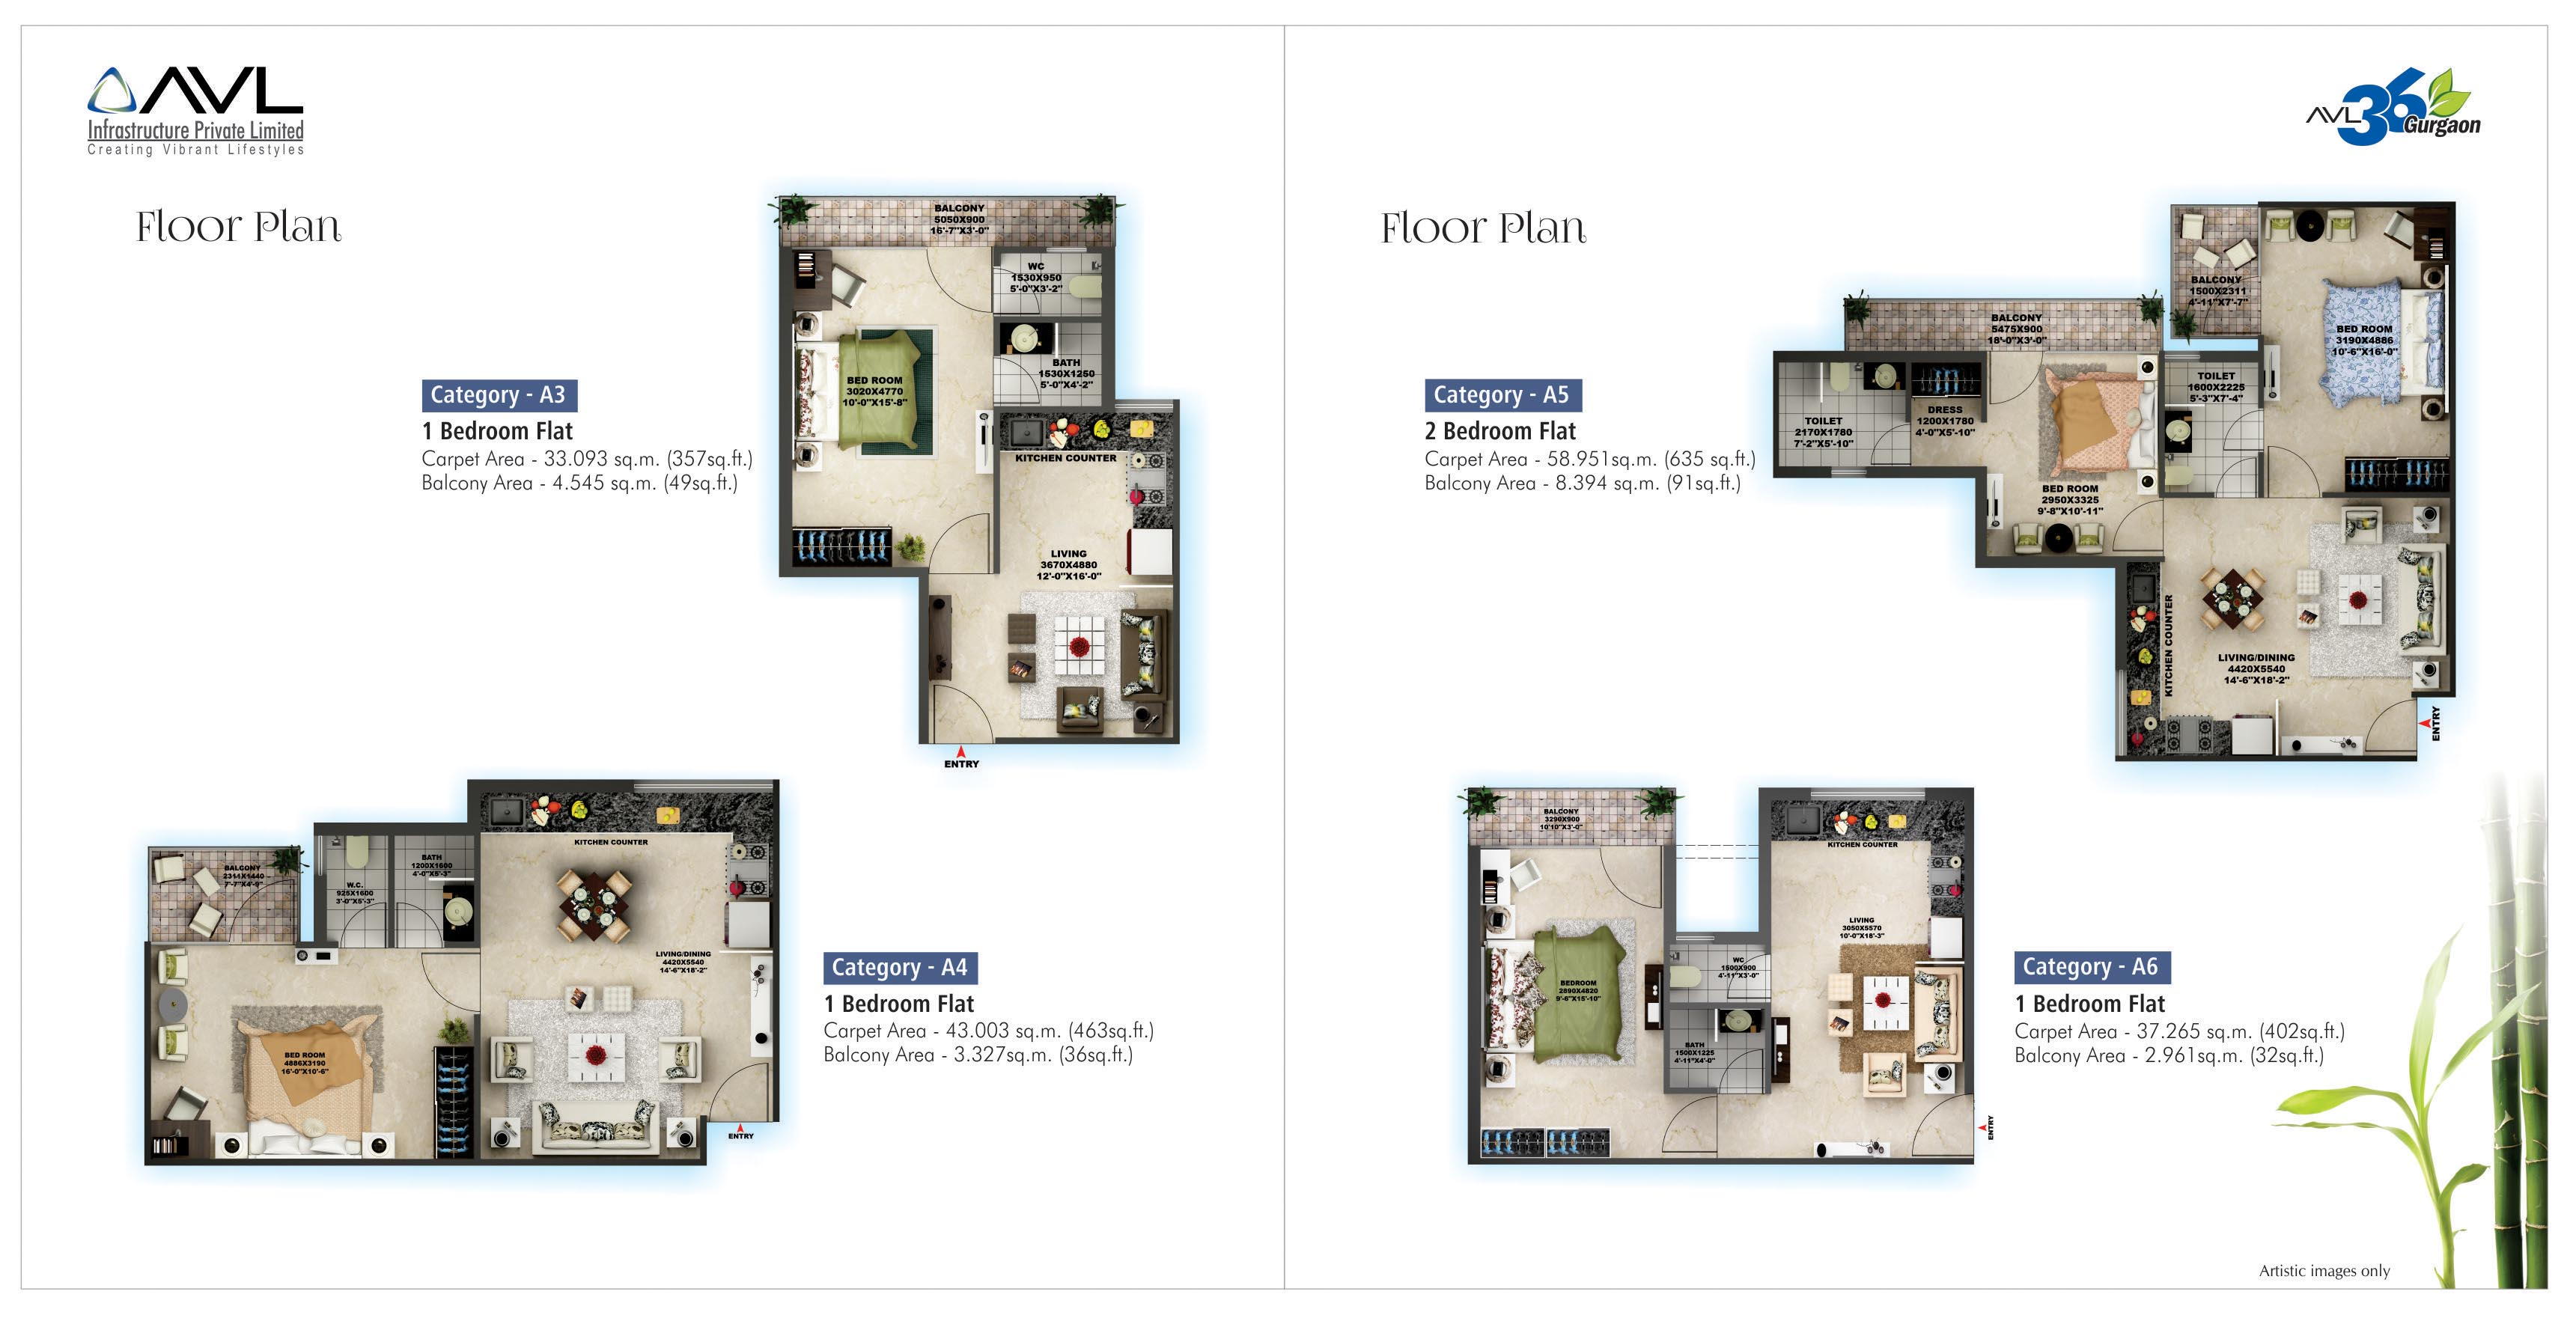 Avl36 sector 36a affordable housing project gurgaon floor plan for Affordable housing floor plans